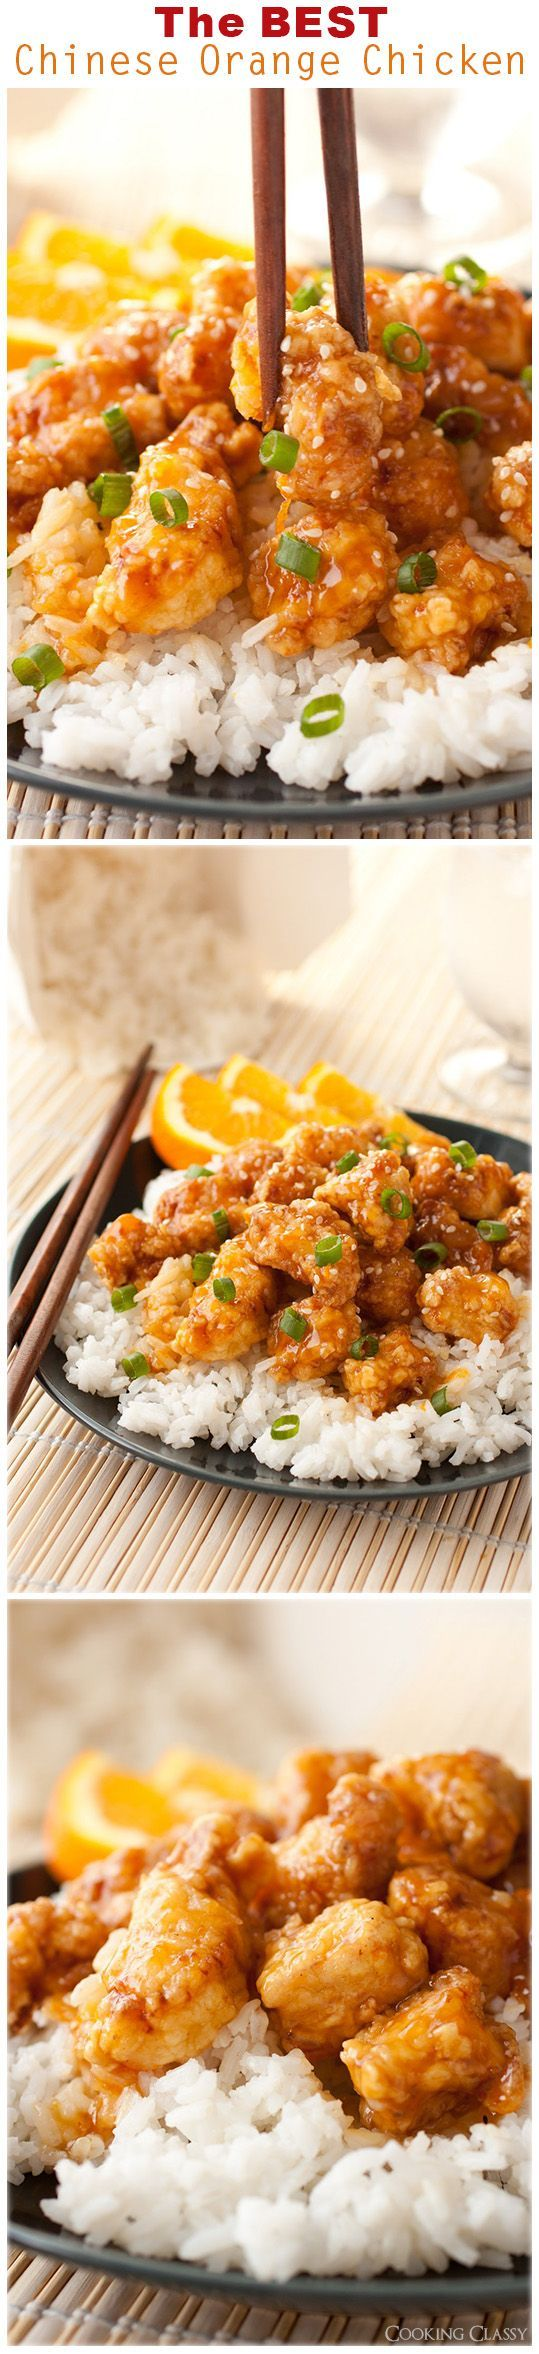 The 25 most pinned chinese recipes on pinterest pinterest chinese orange chicken recipe forumfinder Gallery